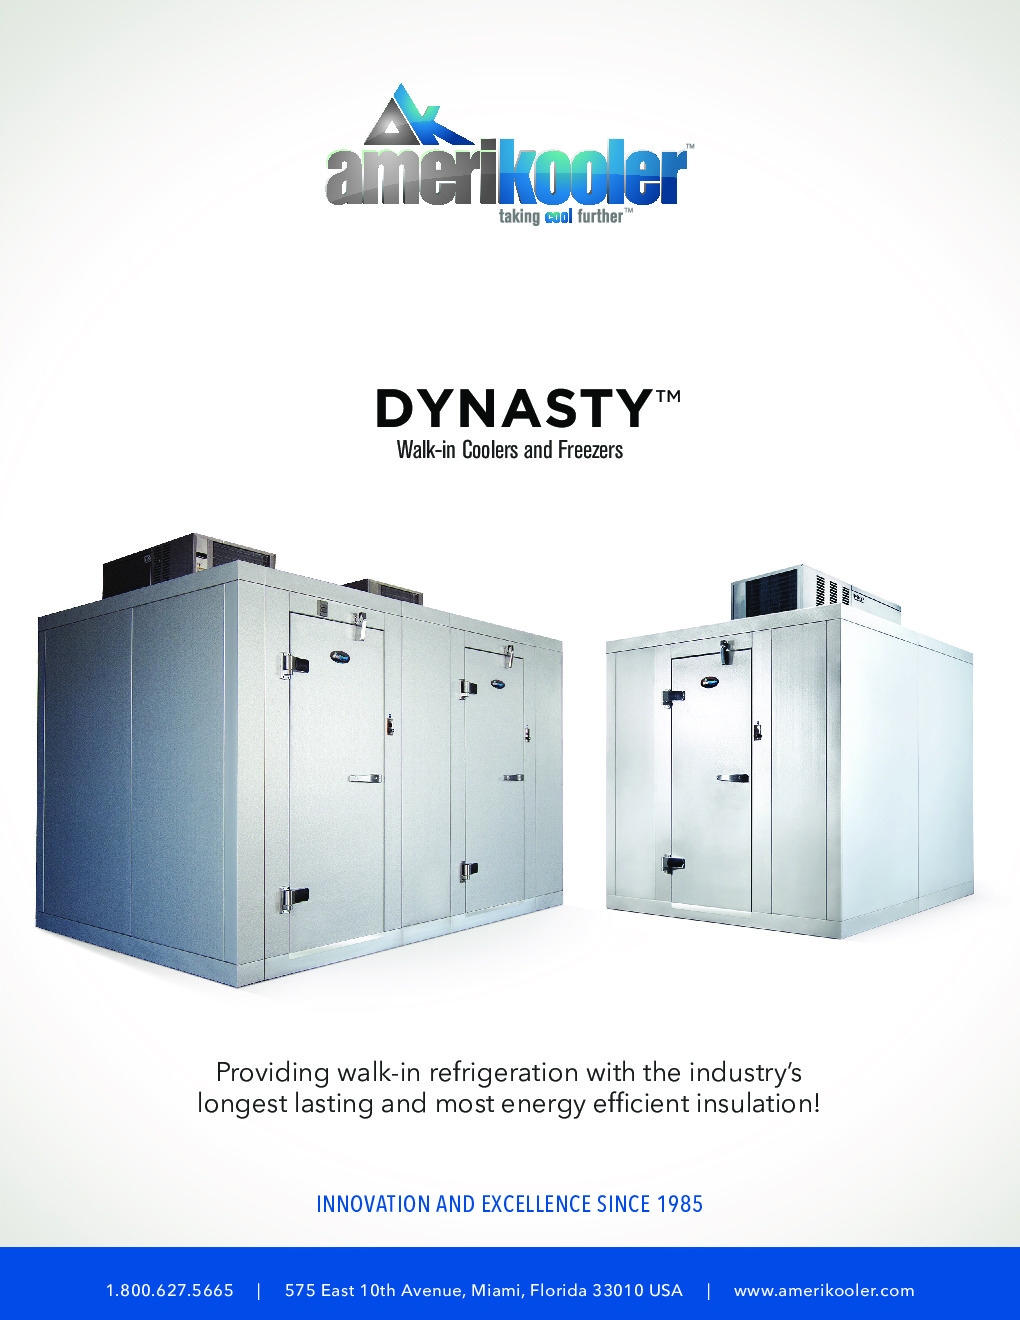 AmeriKooler DW091477F-7/7-RM 9' X 14' Walk-In Cooler, 7' L Cooler with Floor and 7' L Freezer, Remote